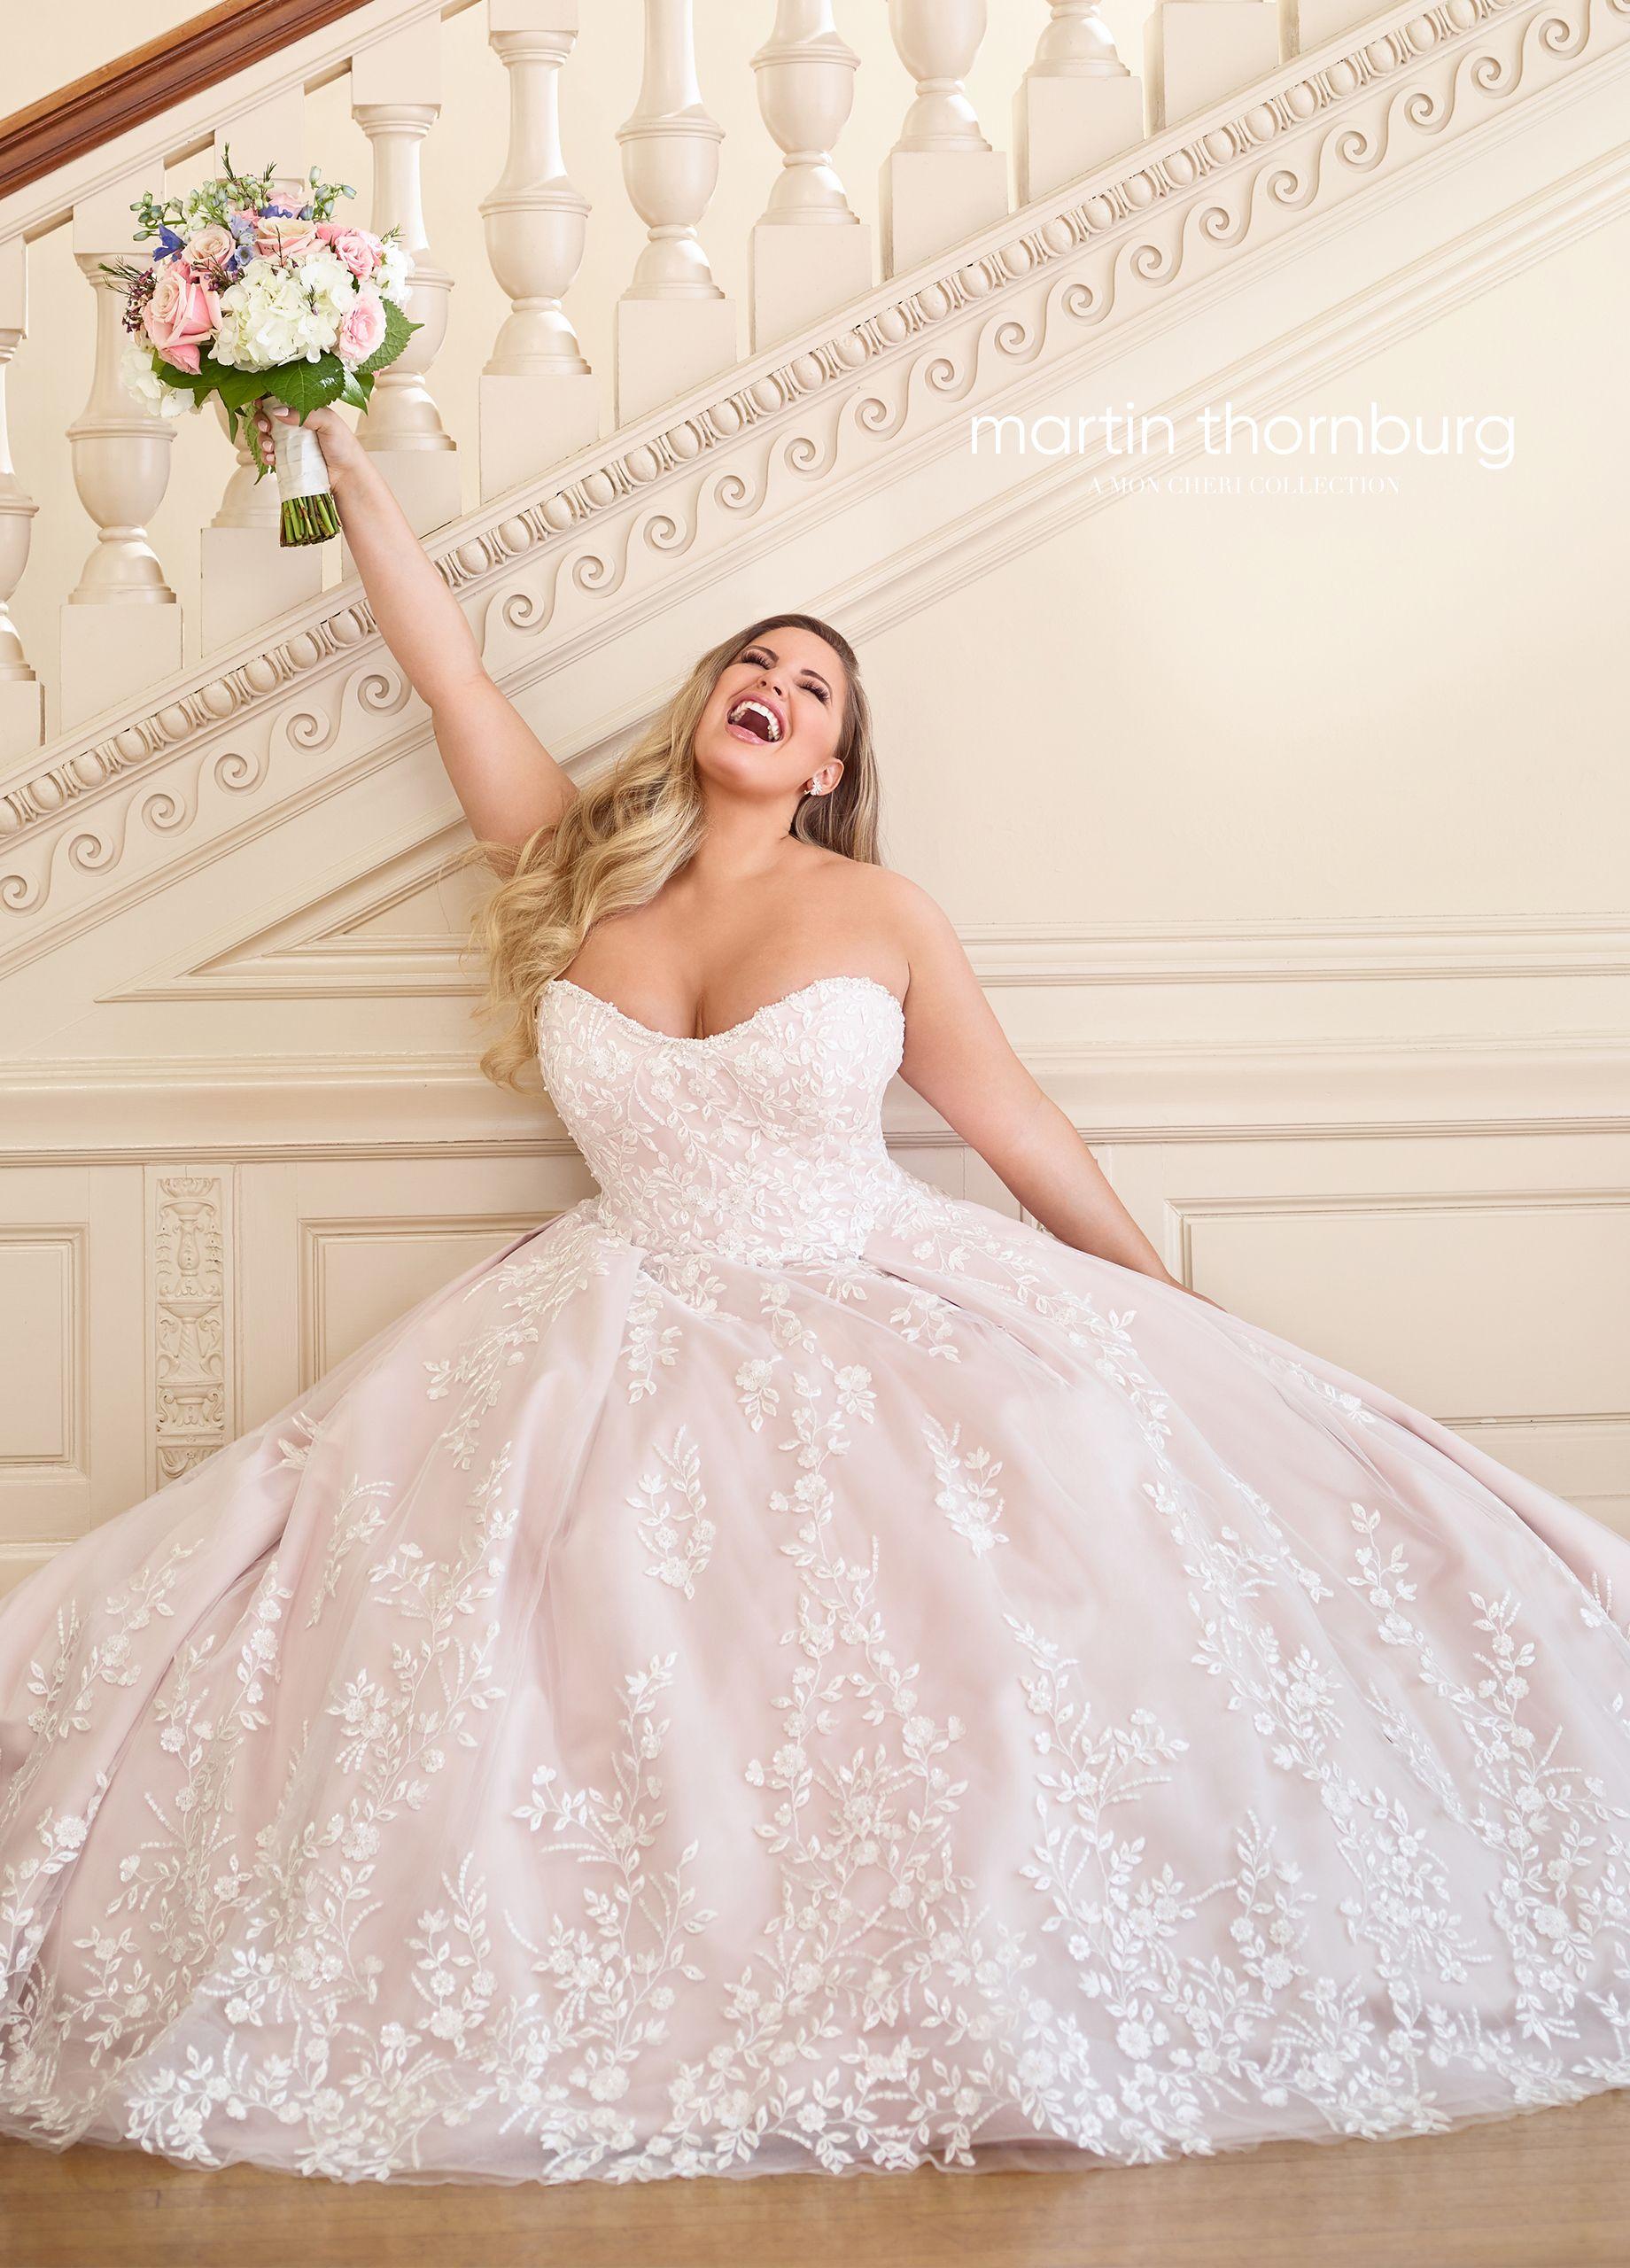 0dde19e8 Martin Thornburg 119252 Hannah - A soft updated spin on the classic ball  gown, this Schiffli lace, tulle, and satin gown features a beautifully  beaded ...